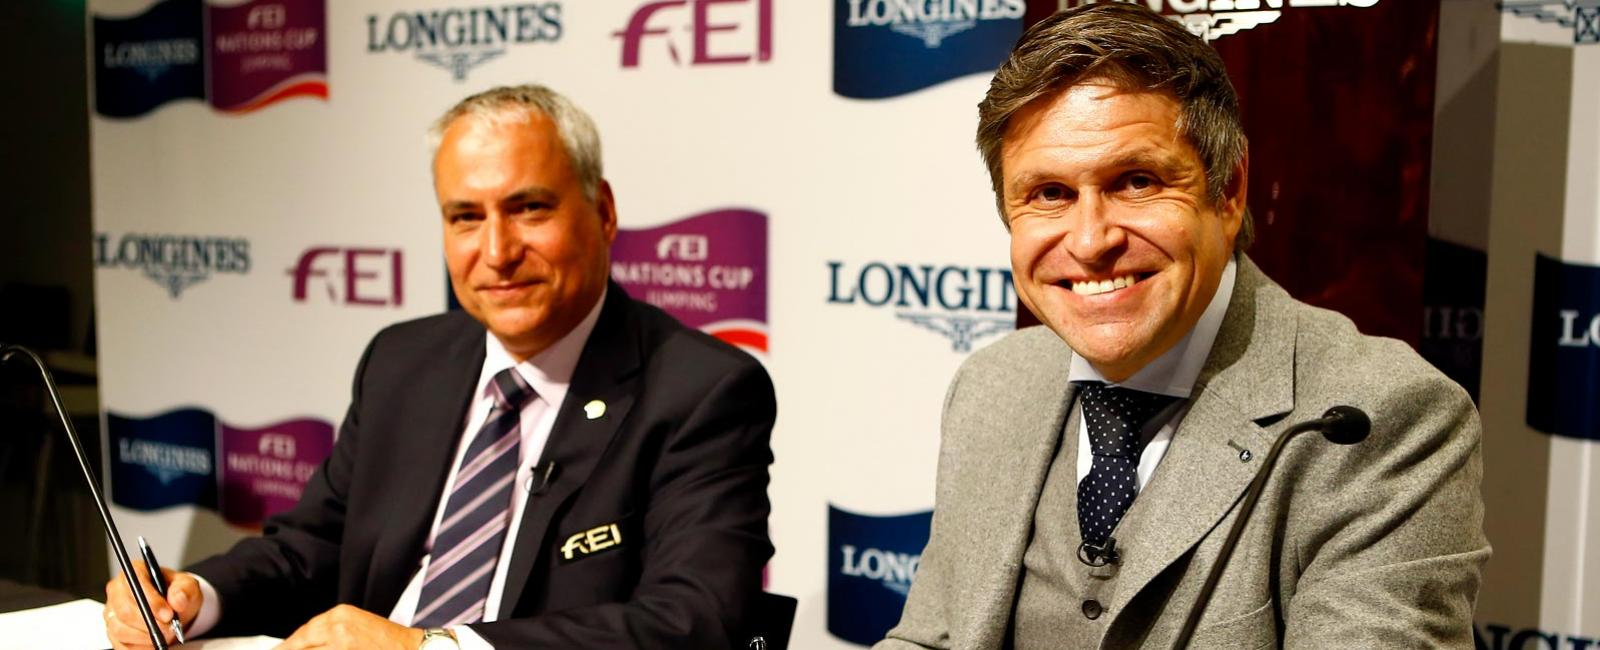 New partnership, Longines and FEI Nations Cup, 2017, long-term partnership